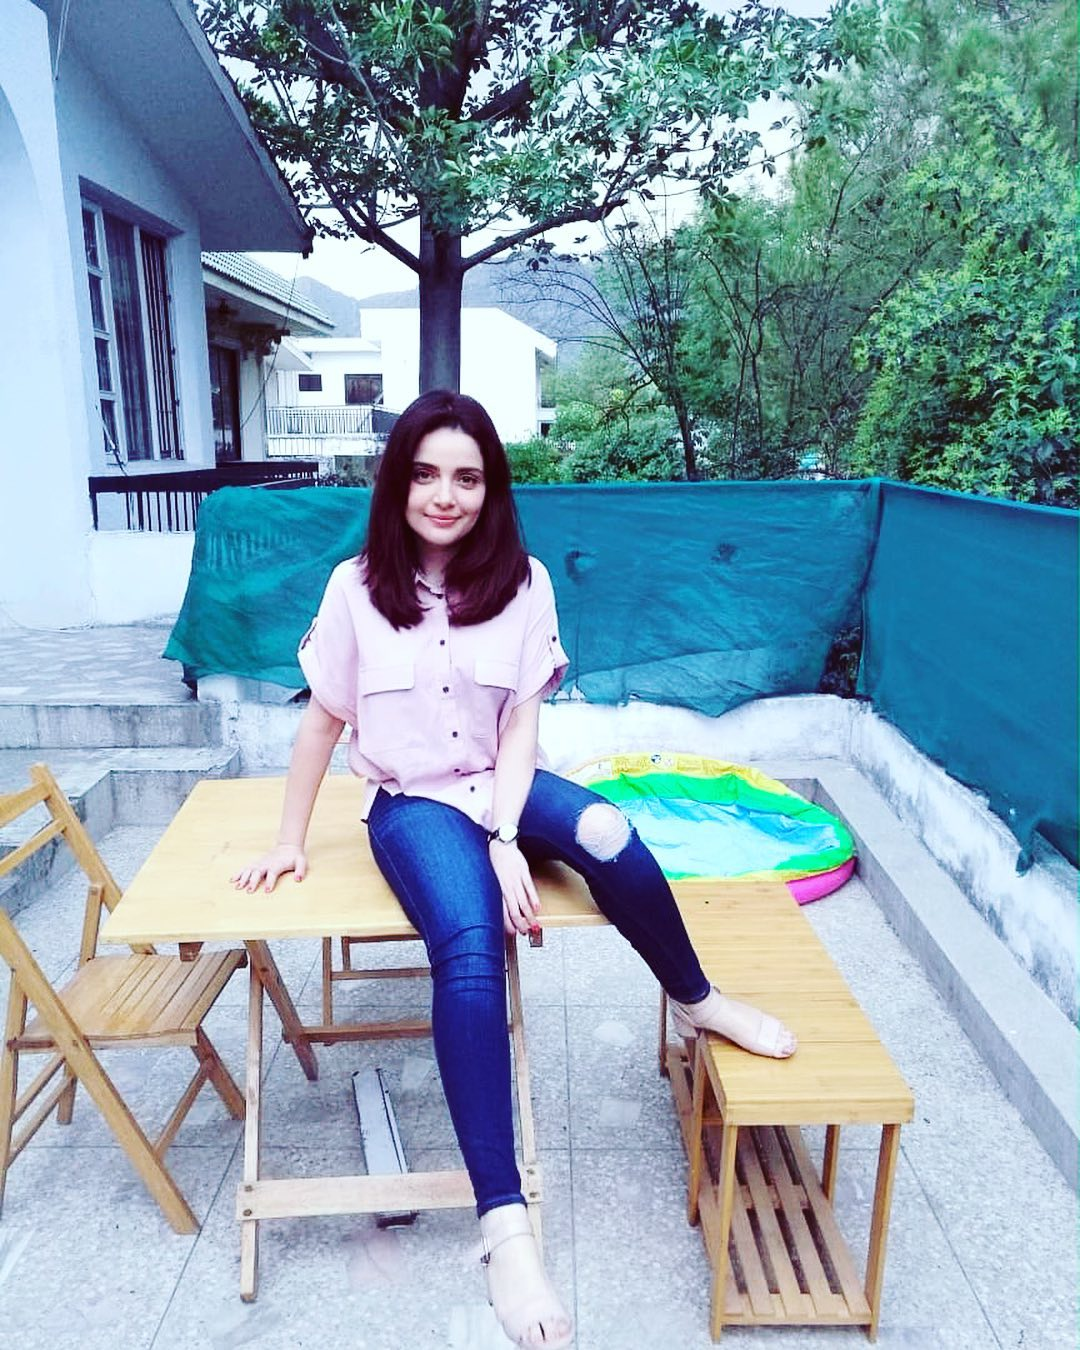 Armeena Khan Pics of Departure 🛫, Arrival and Having Fun in Manchester 🇬🇧